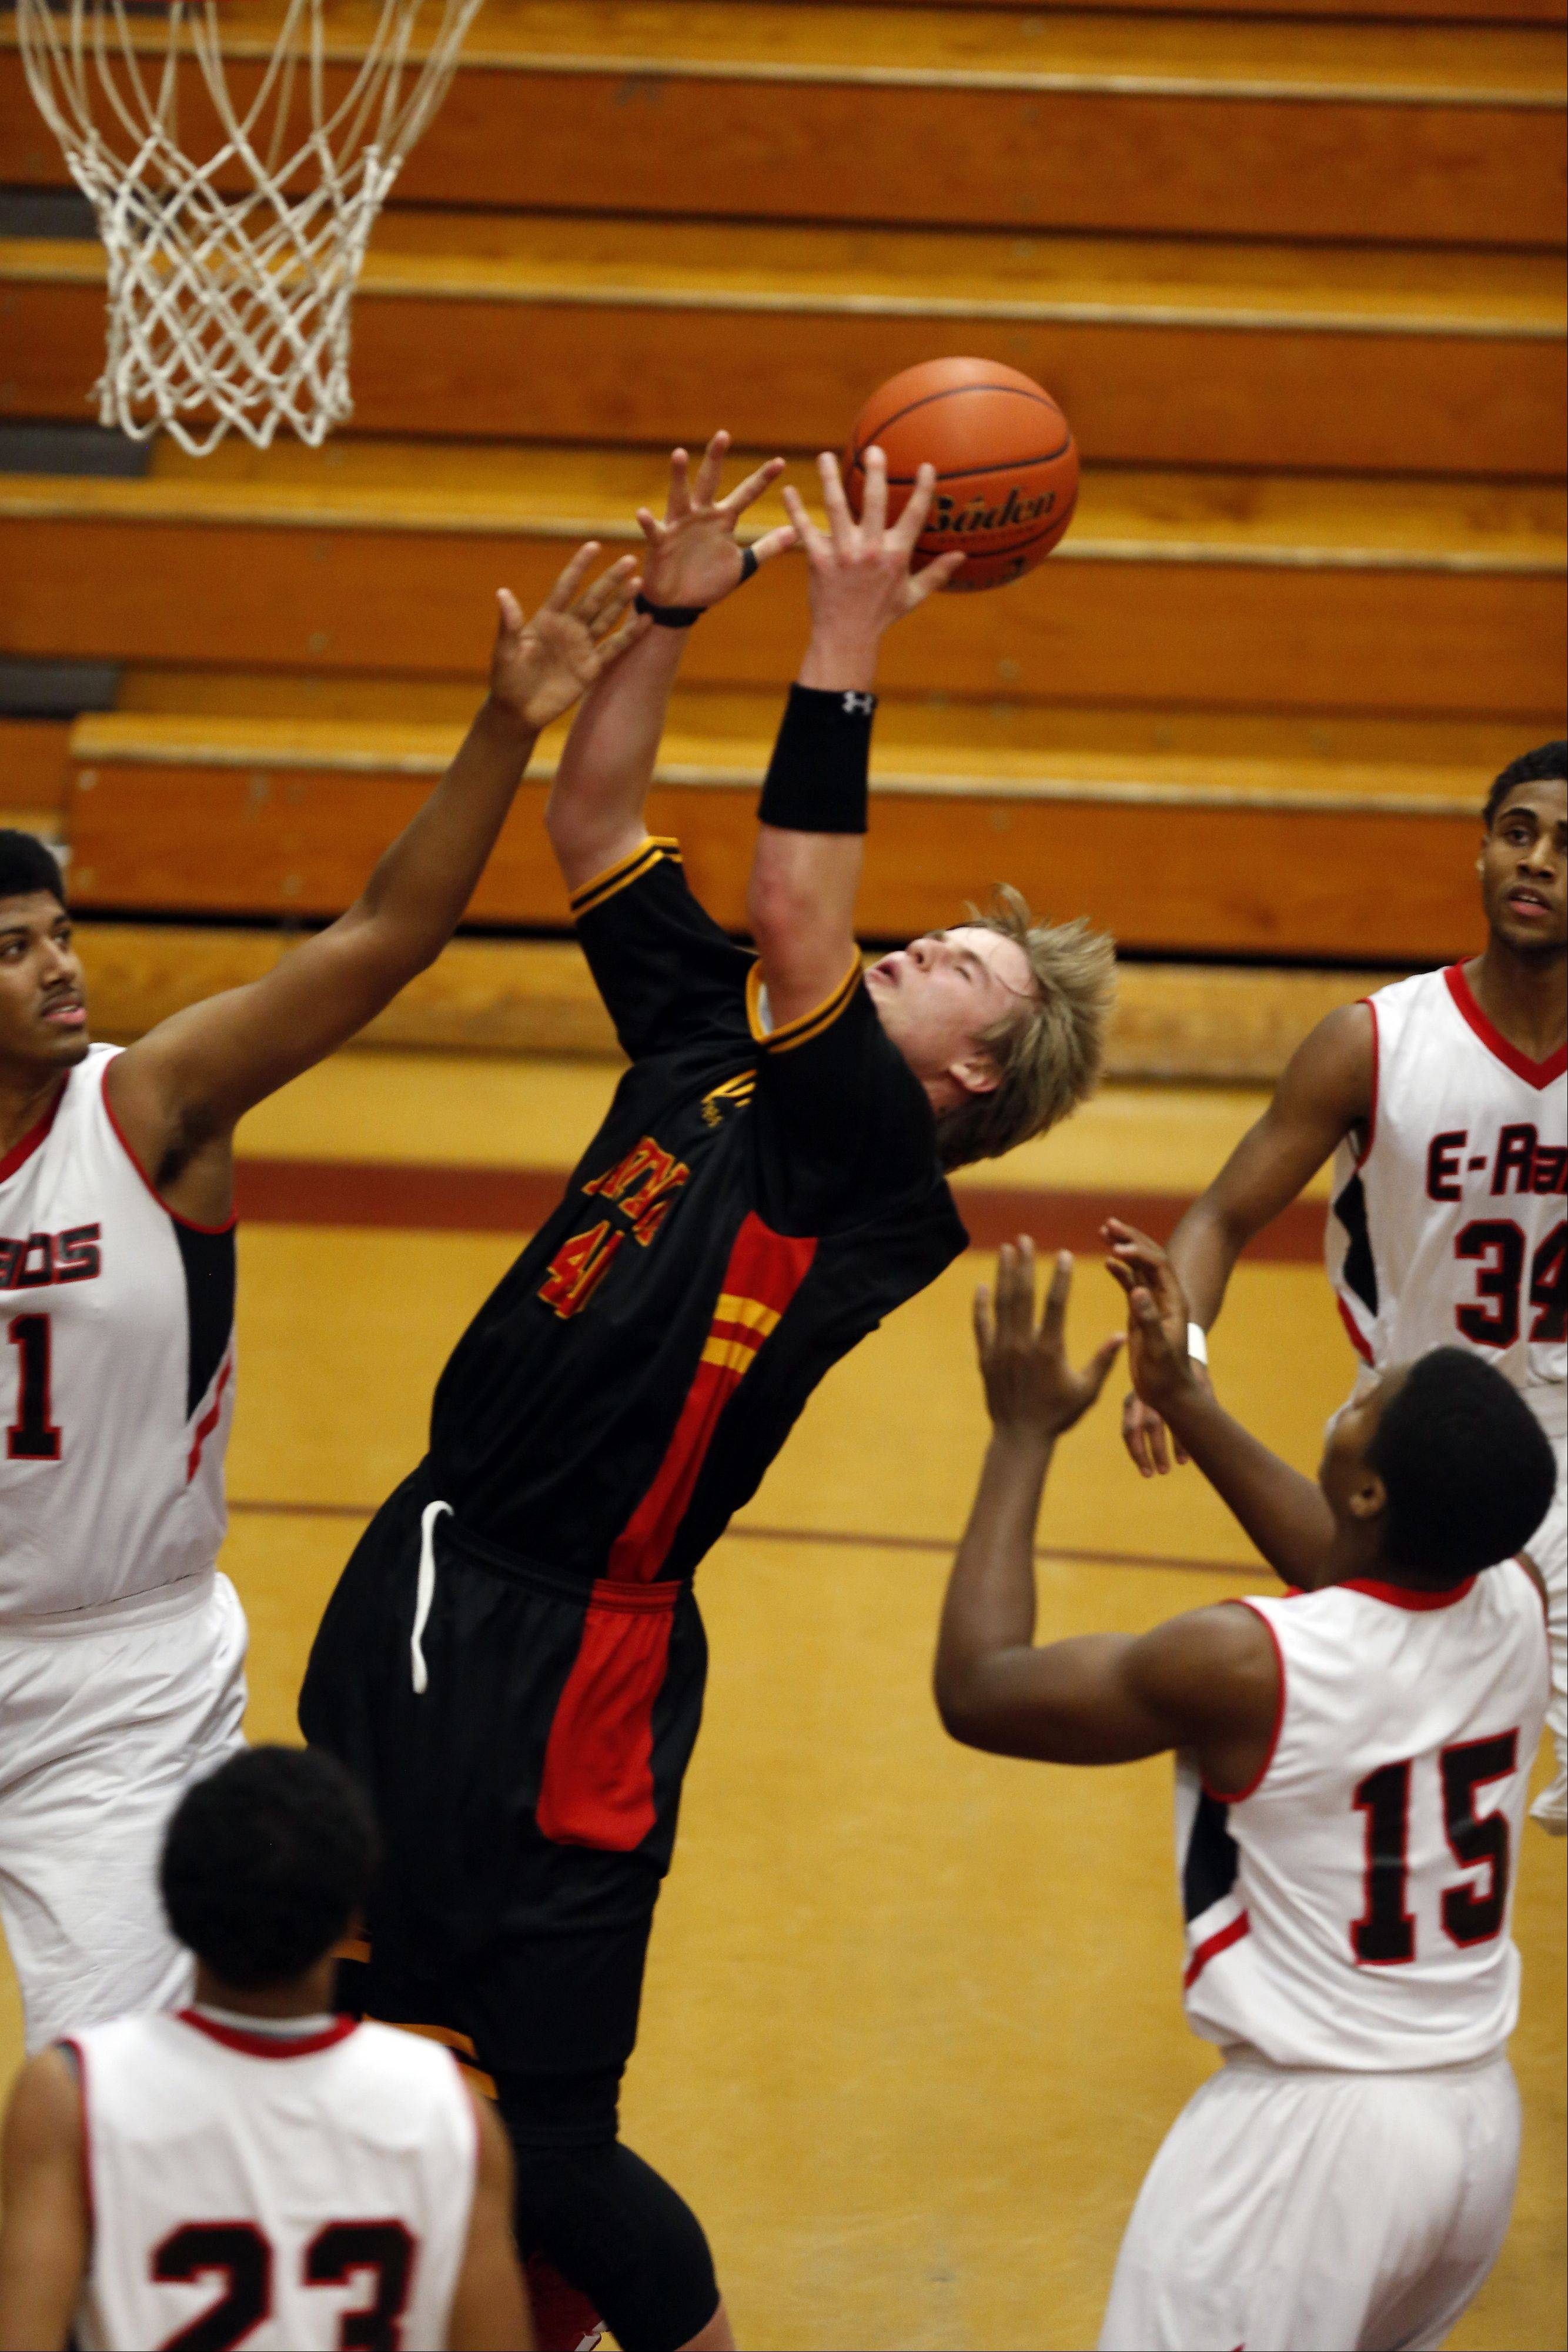 Images from Batavia vs Rockford East at the 39th Annual Elgin Boys Holiday Basketball Tournament at Elgin High School Saturday December 28, 2013.